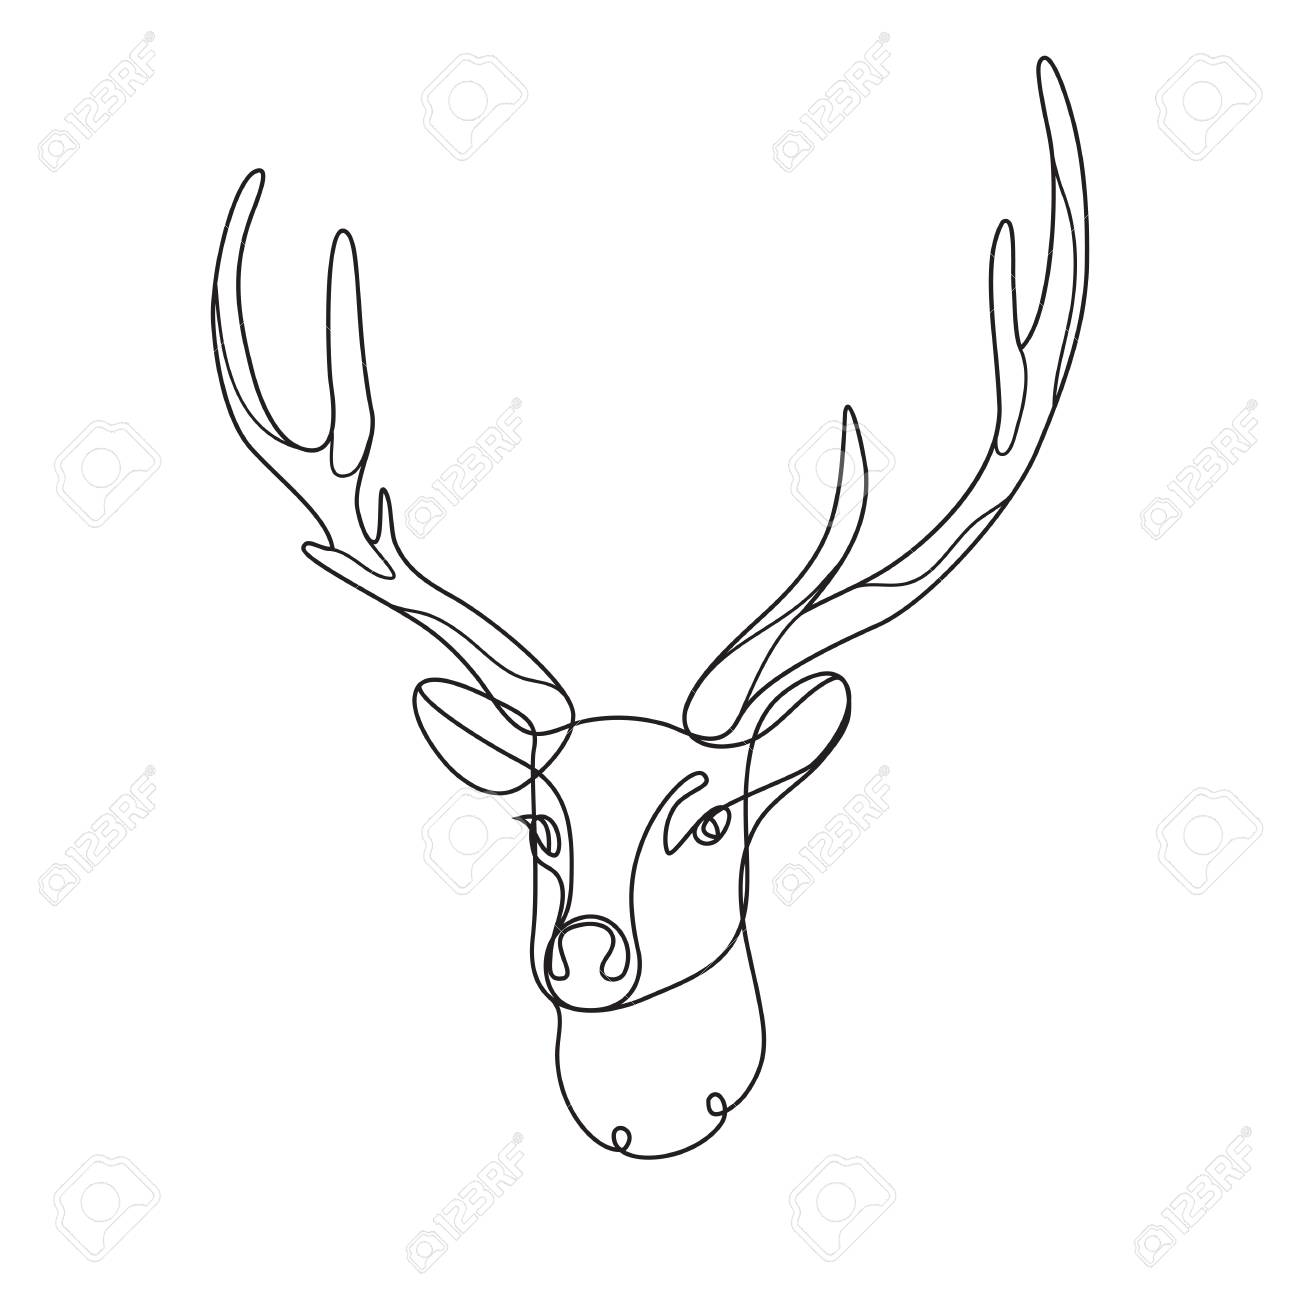 Line Art Deer Abstract Modern Decoration Vector Illustration Royalty Free Cliparts Vectors And Stock Illustration Image 88356150